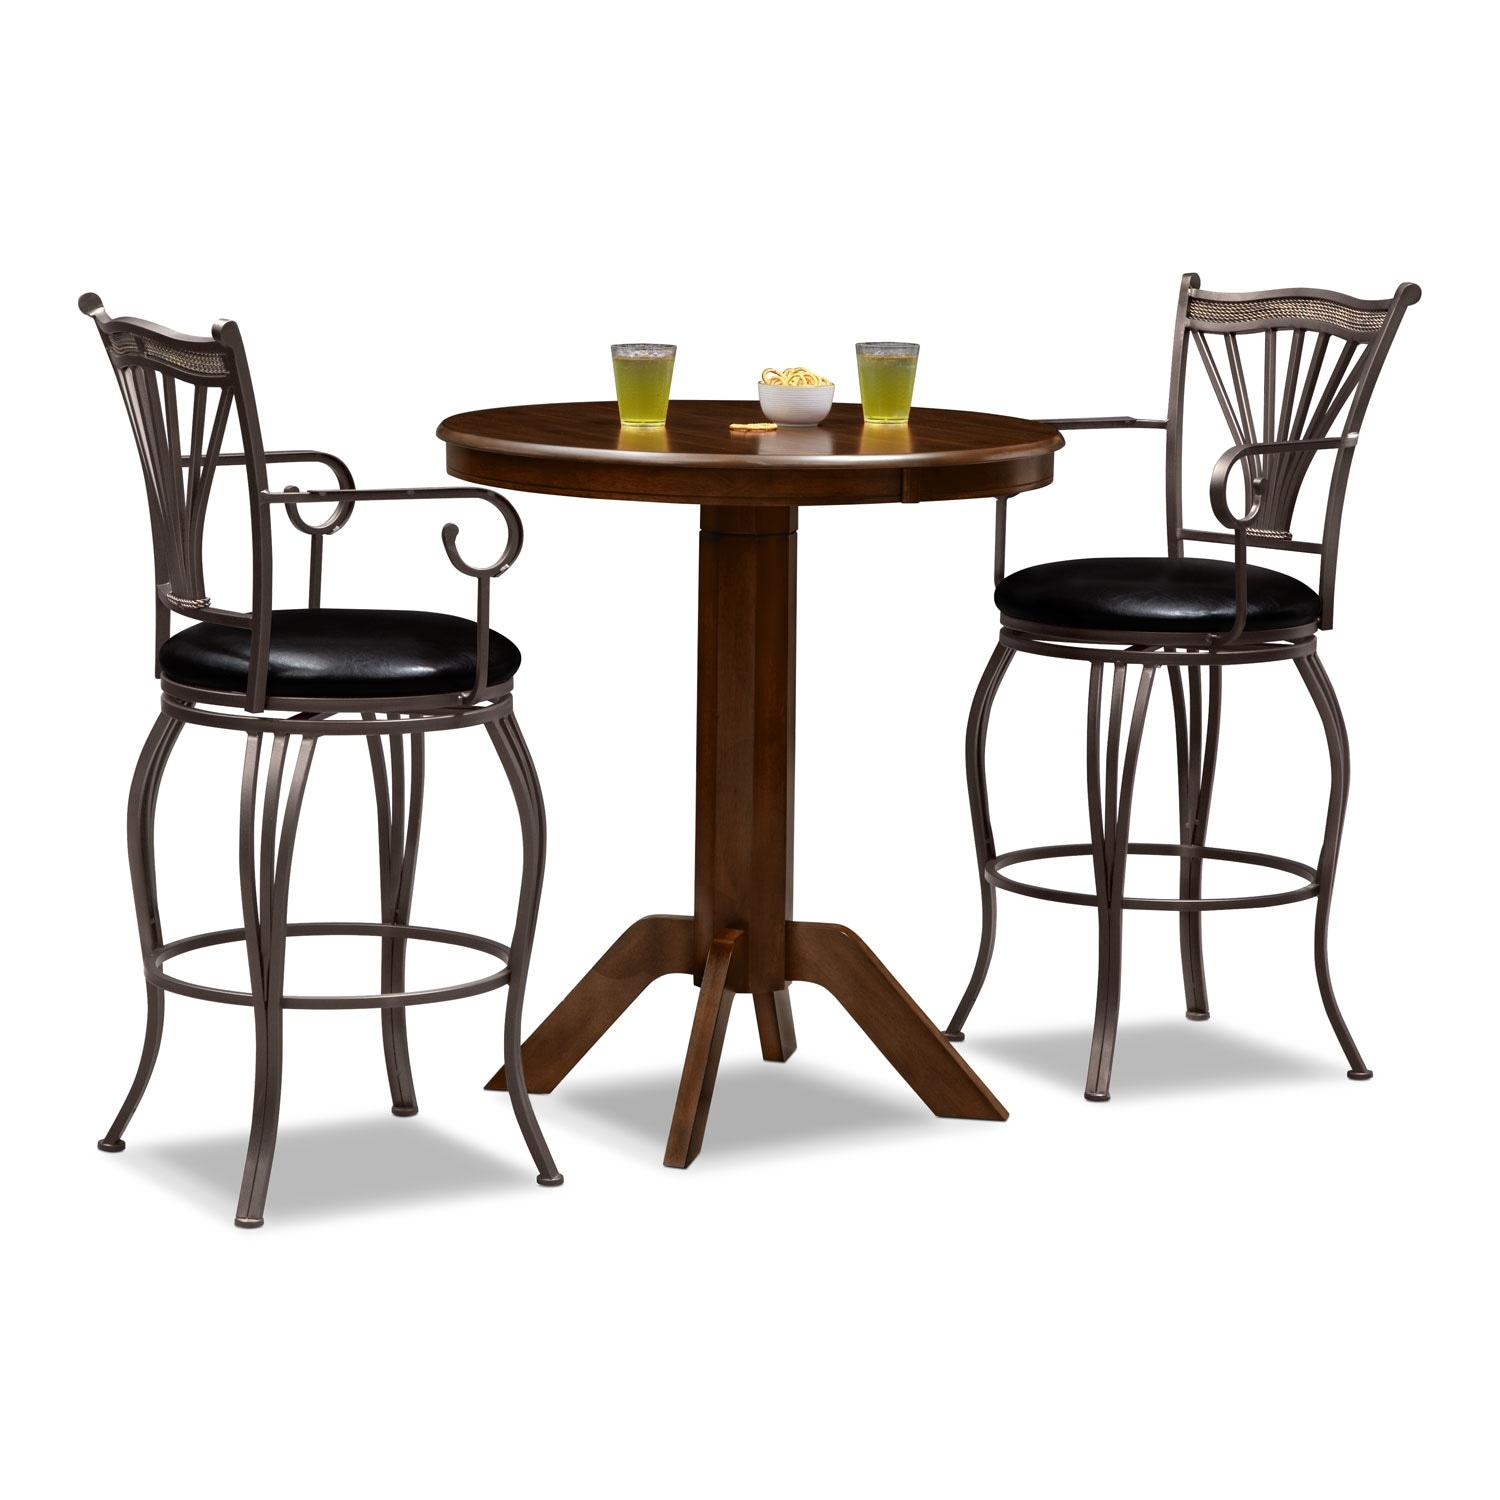 Dining Room Furniture - Concord Morgan 3 Pc. Bar-Height Dinette